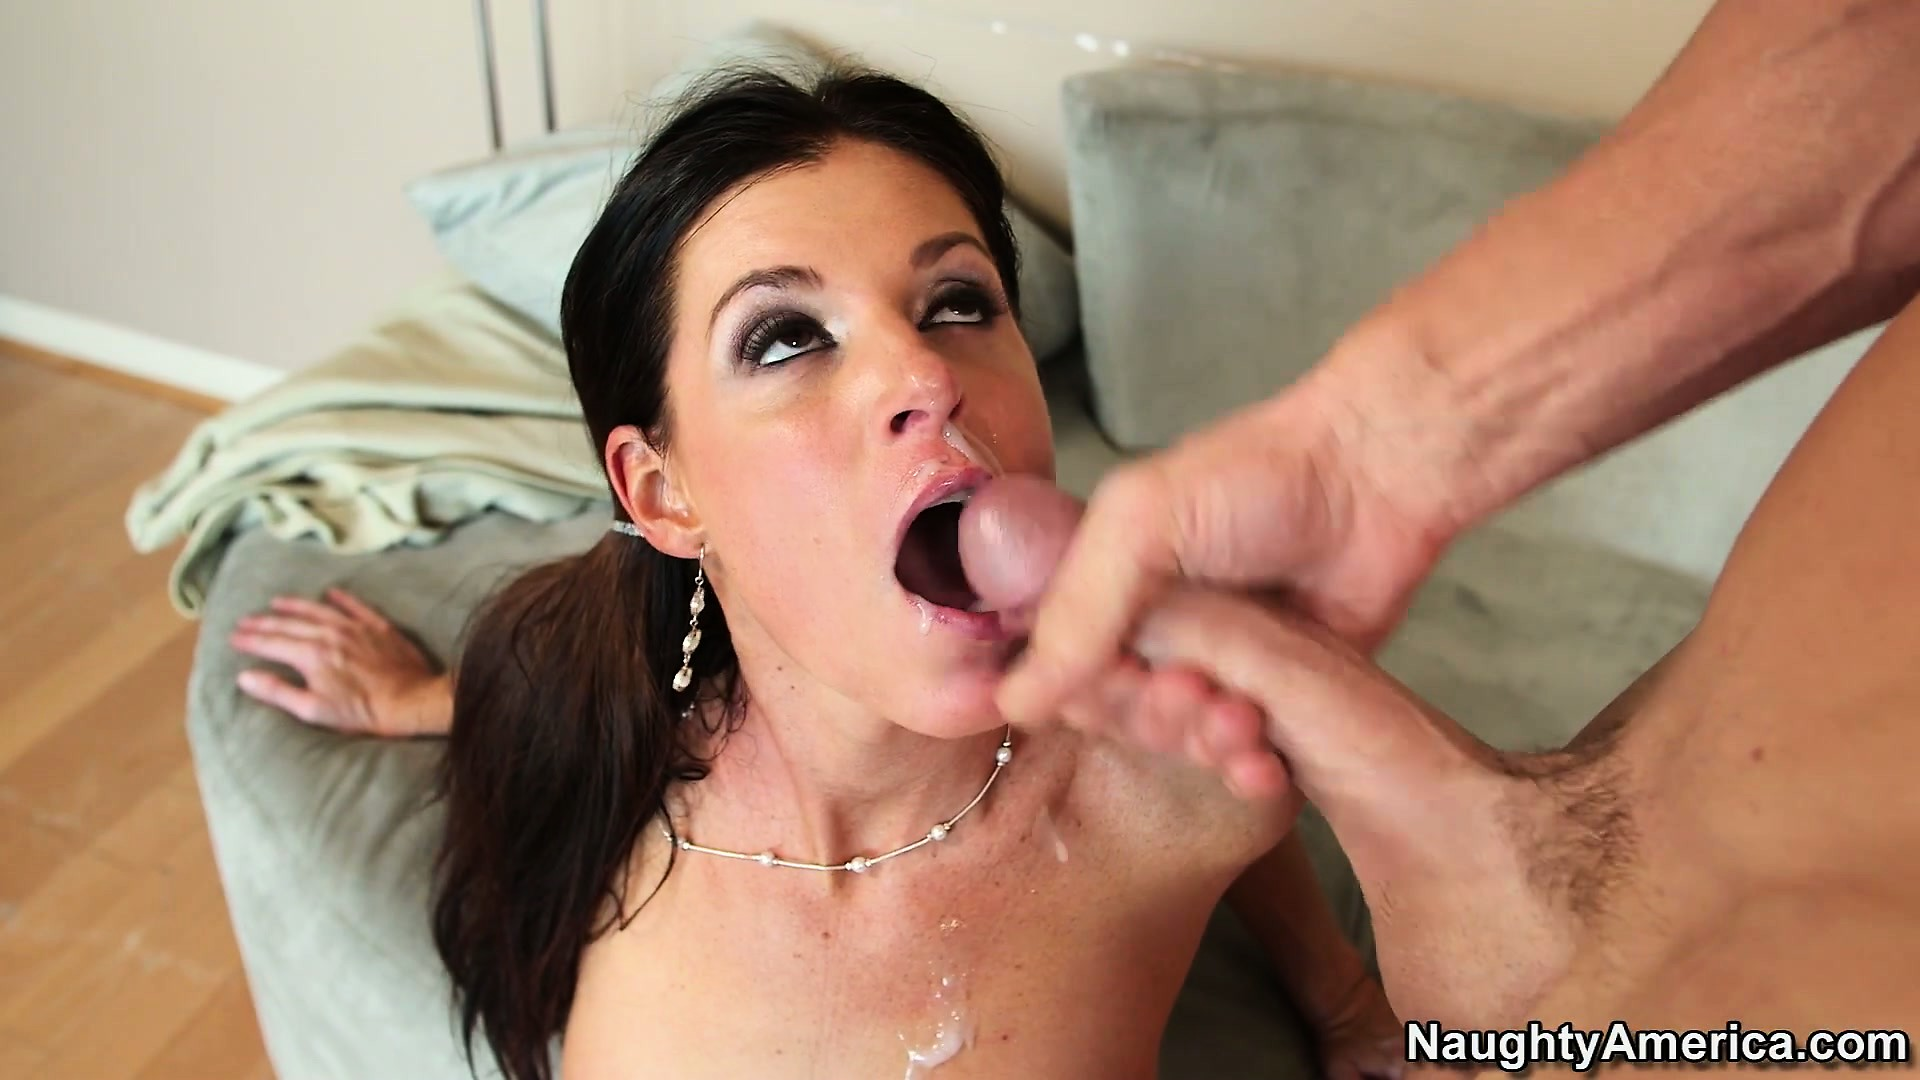 Porn Tube of India Summer Is A Pretty, Brunette Princess That Likes His Creamy Vanilla Treat